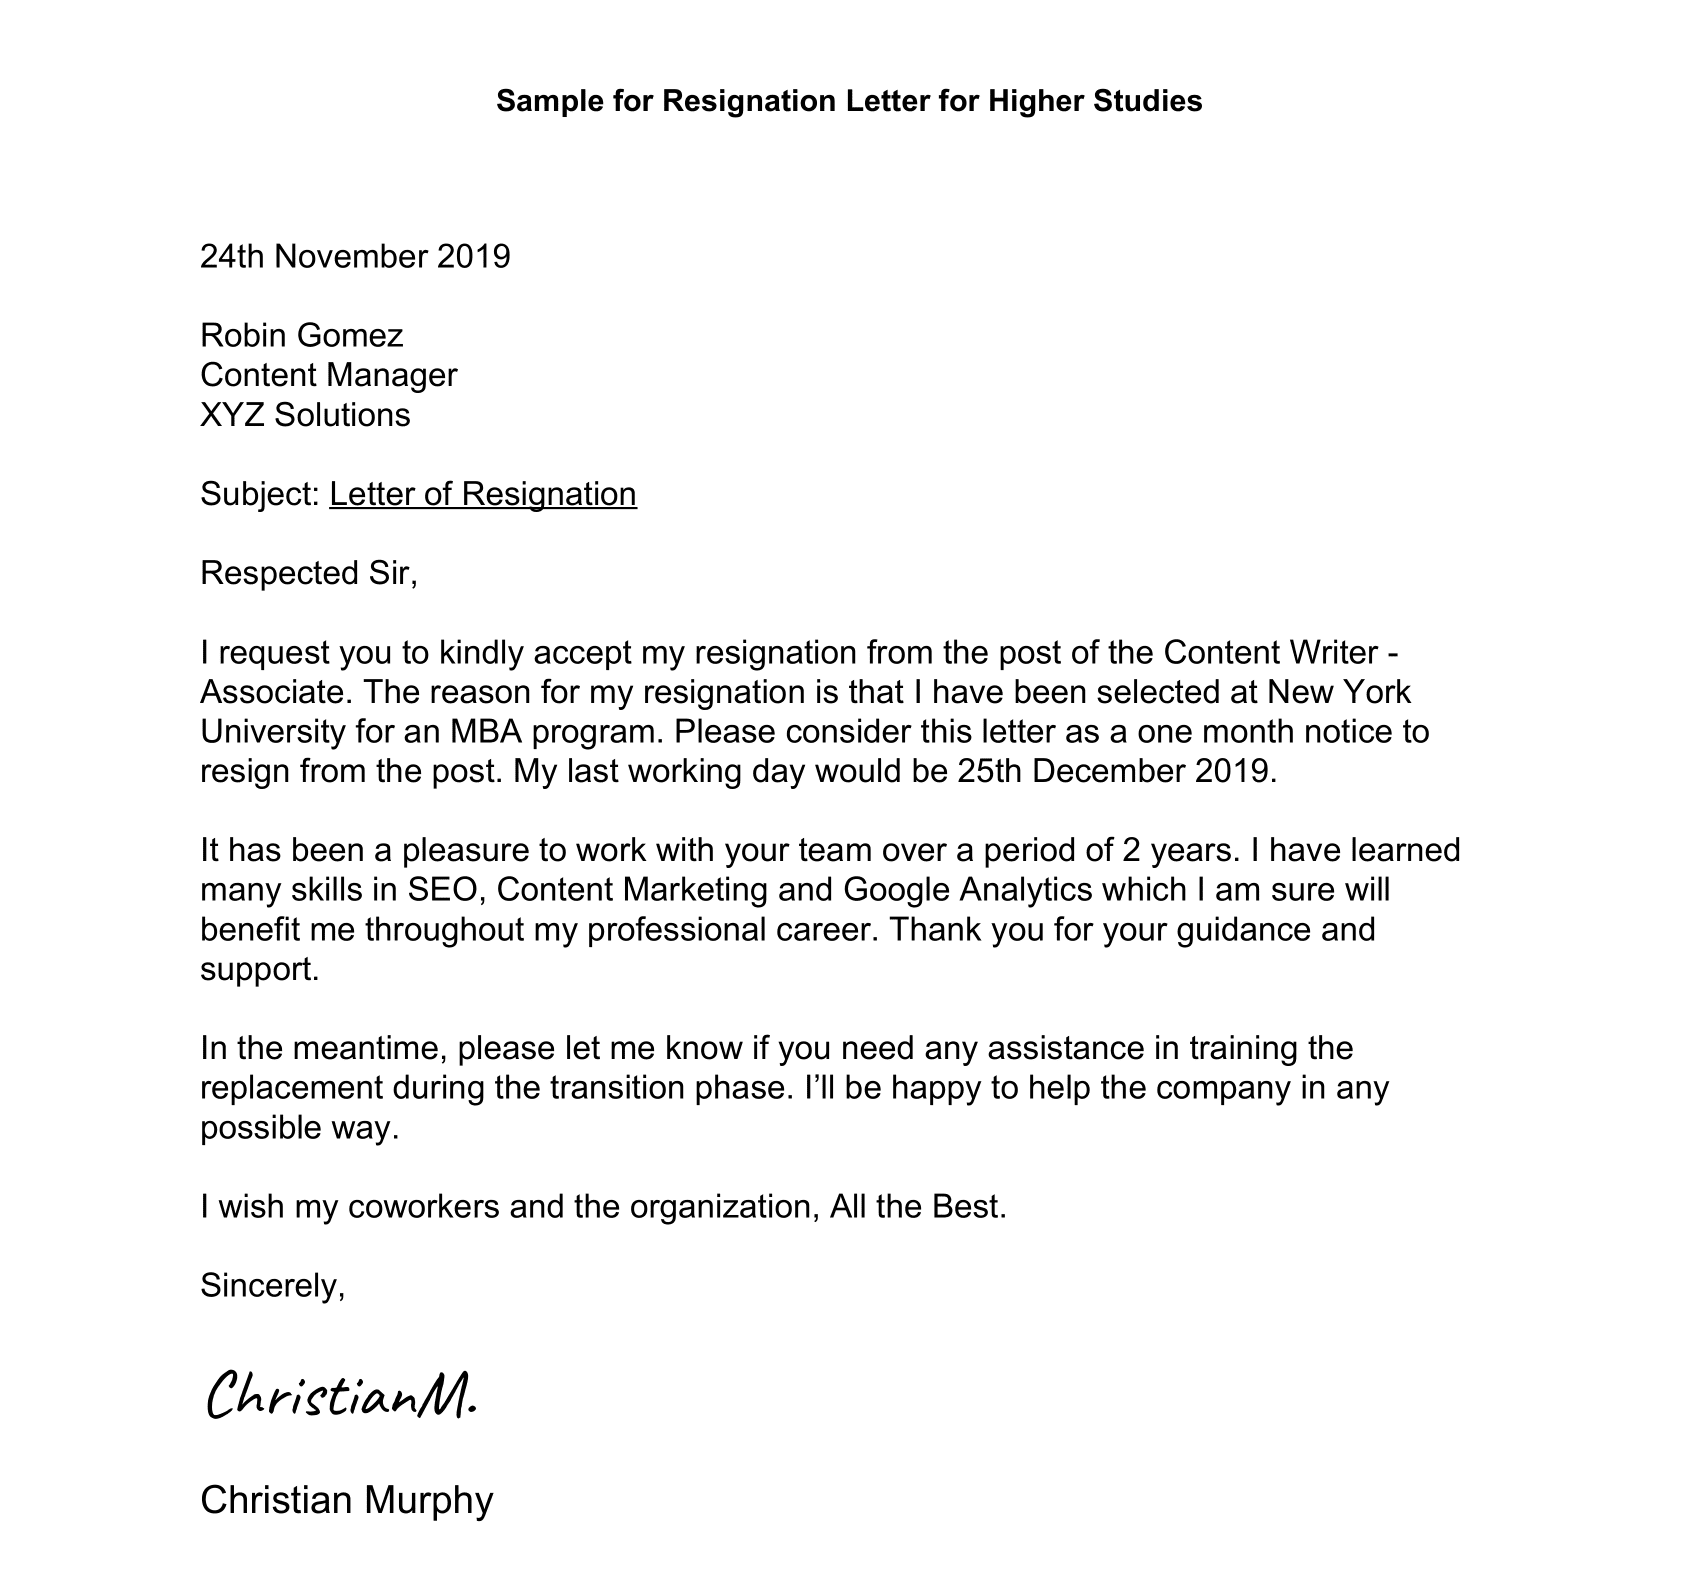 Resignation Letter for Higher Studies Format & Samples   Leverage Edu